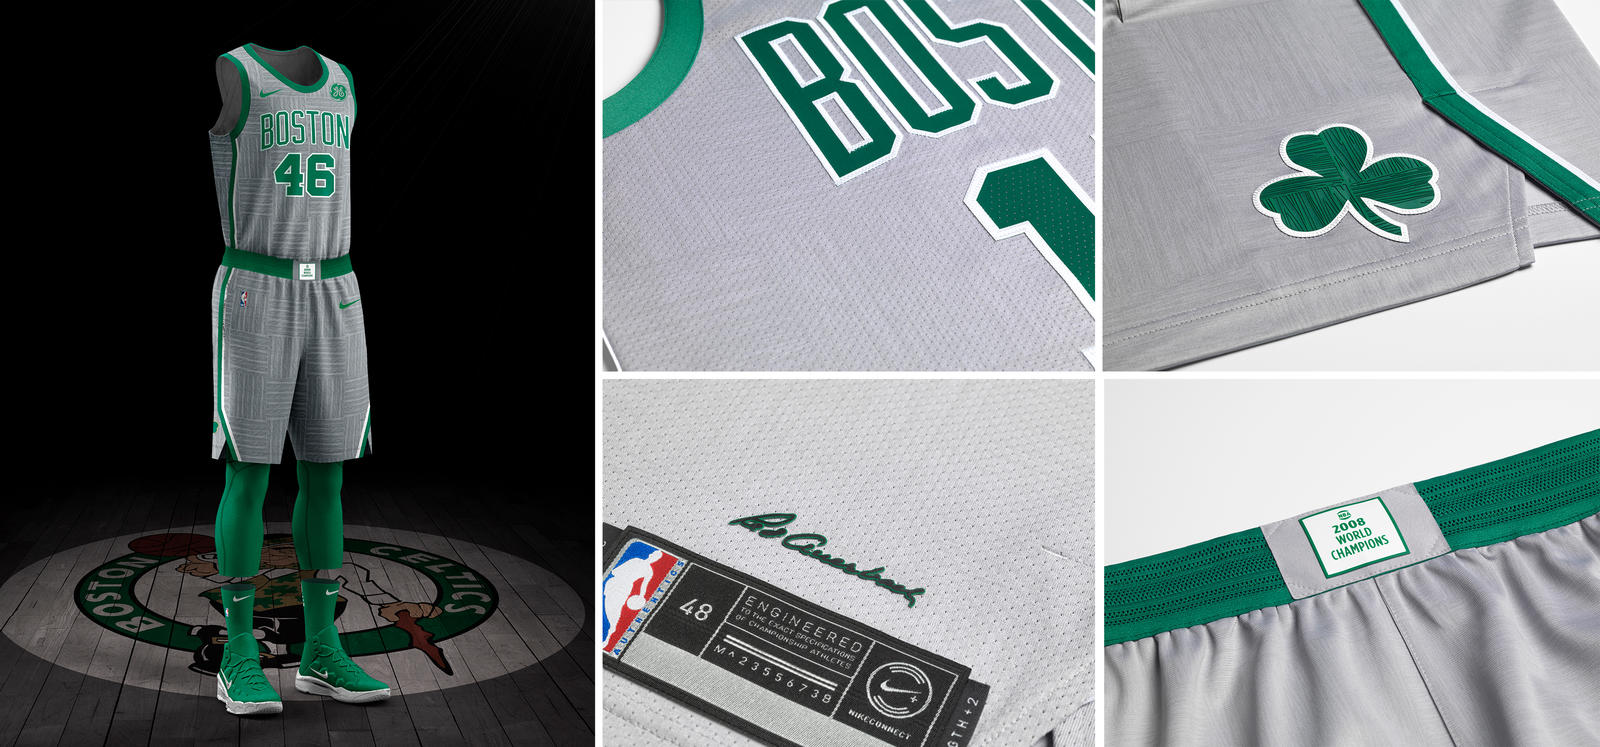 25b99a4cef24 Nike releases dope NBA City edition uniforms